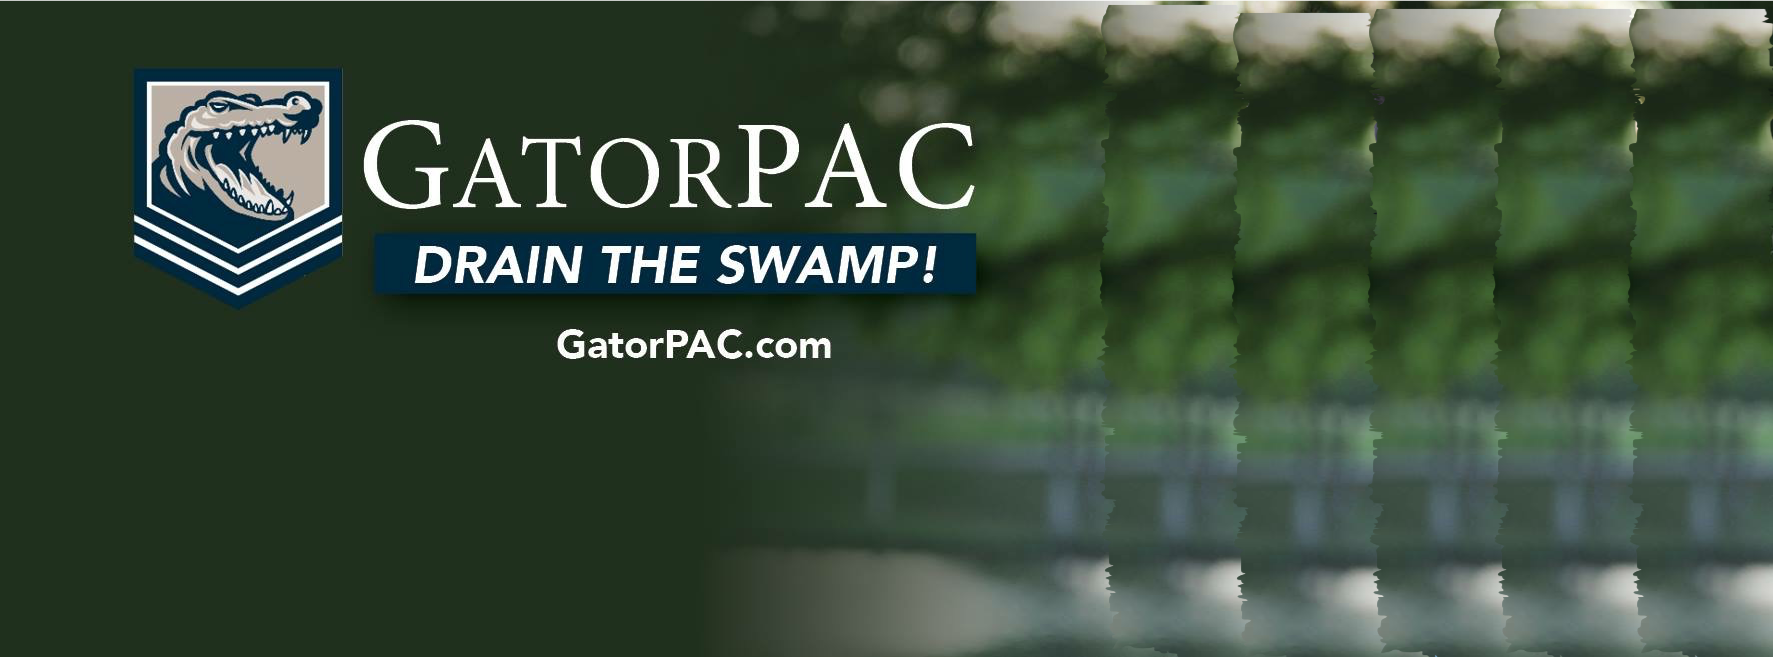 GatorPAC: Protect Your Liberty